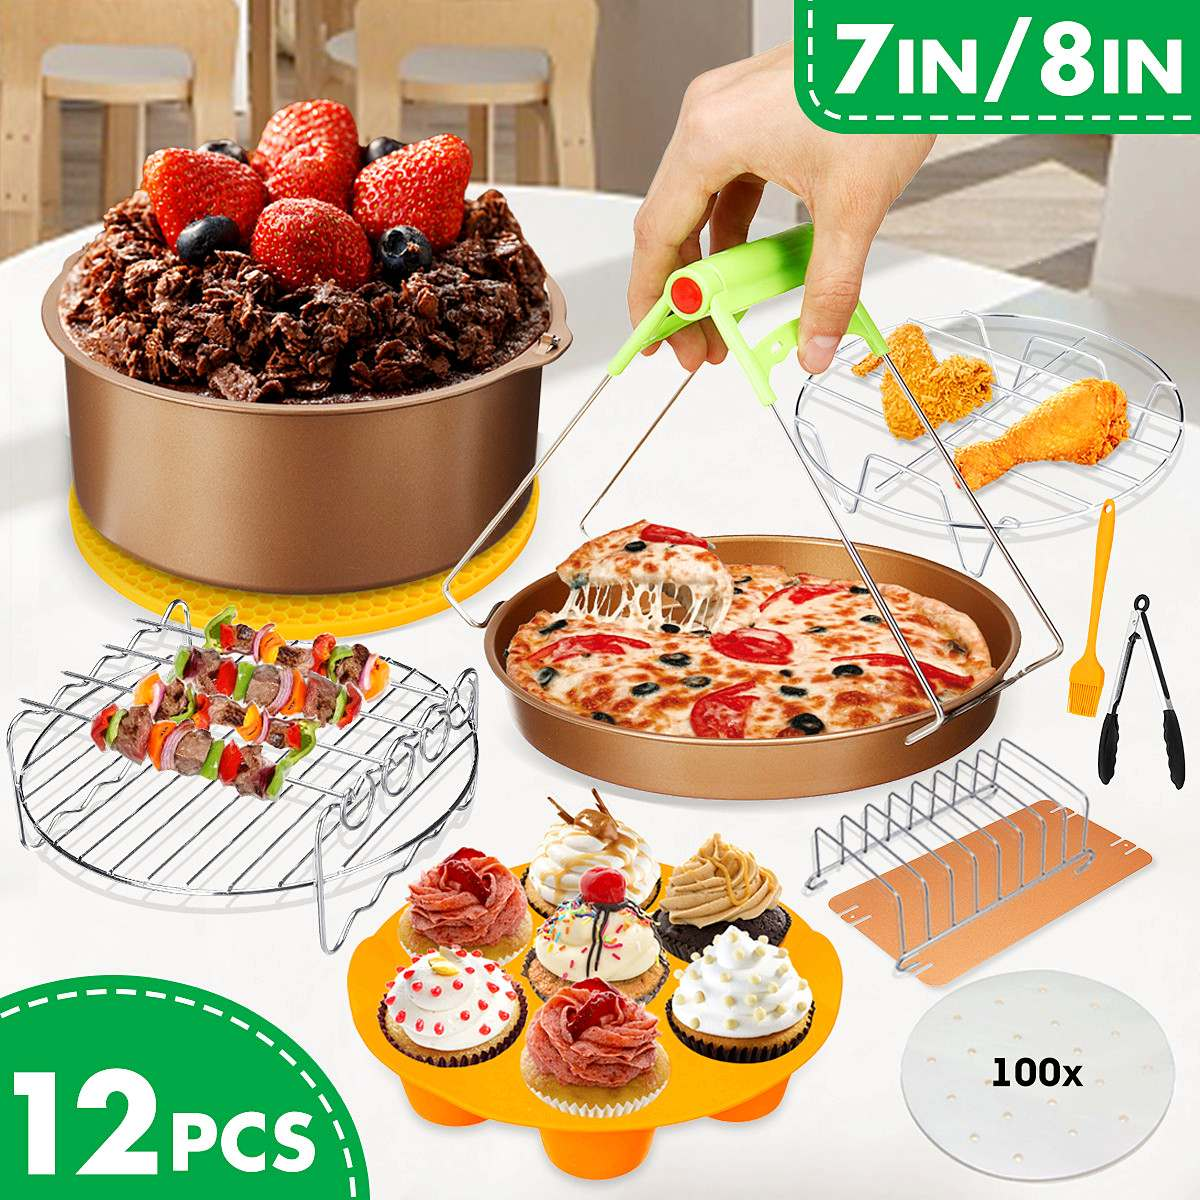 12Pcs Set 7/8 inch Air Fryer Accessories Kitchen Tools For Gowise Phillips Cozyna and Secura, Fit For  Air fryer 3.2QT to 6.8QT12Pcs Set 7/8 inch Air Fryer Accessories Kitchen Tools For Gowise Phillips Cozyna and Secura, Fit For  Air fryer 3.2QT to 6.8QT